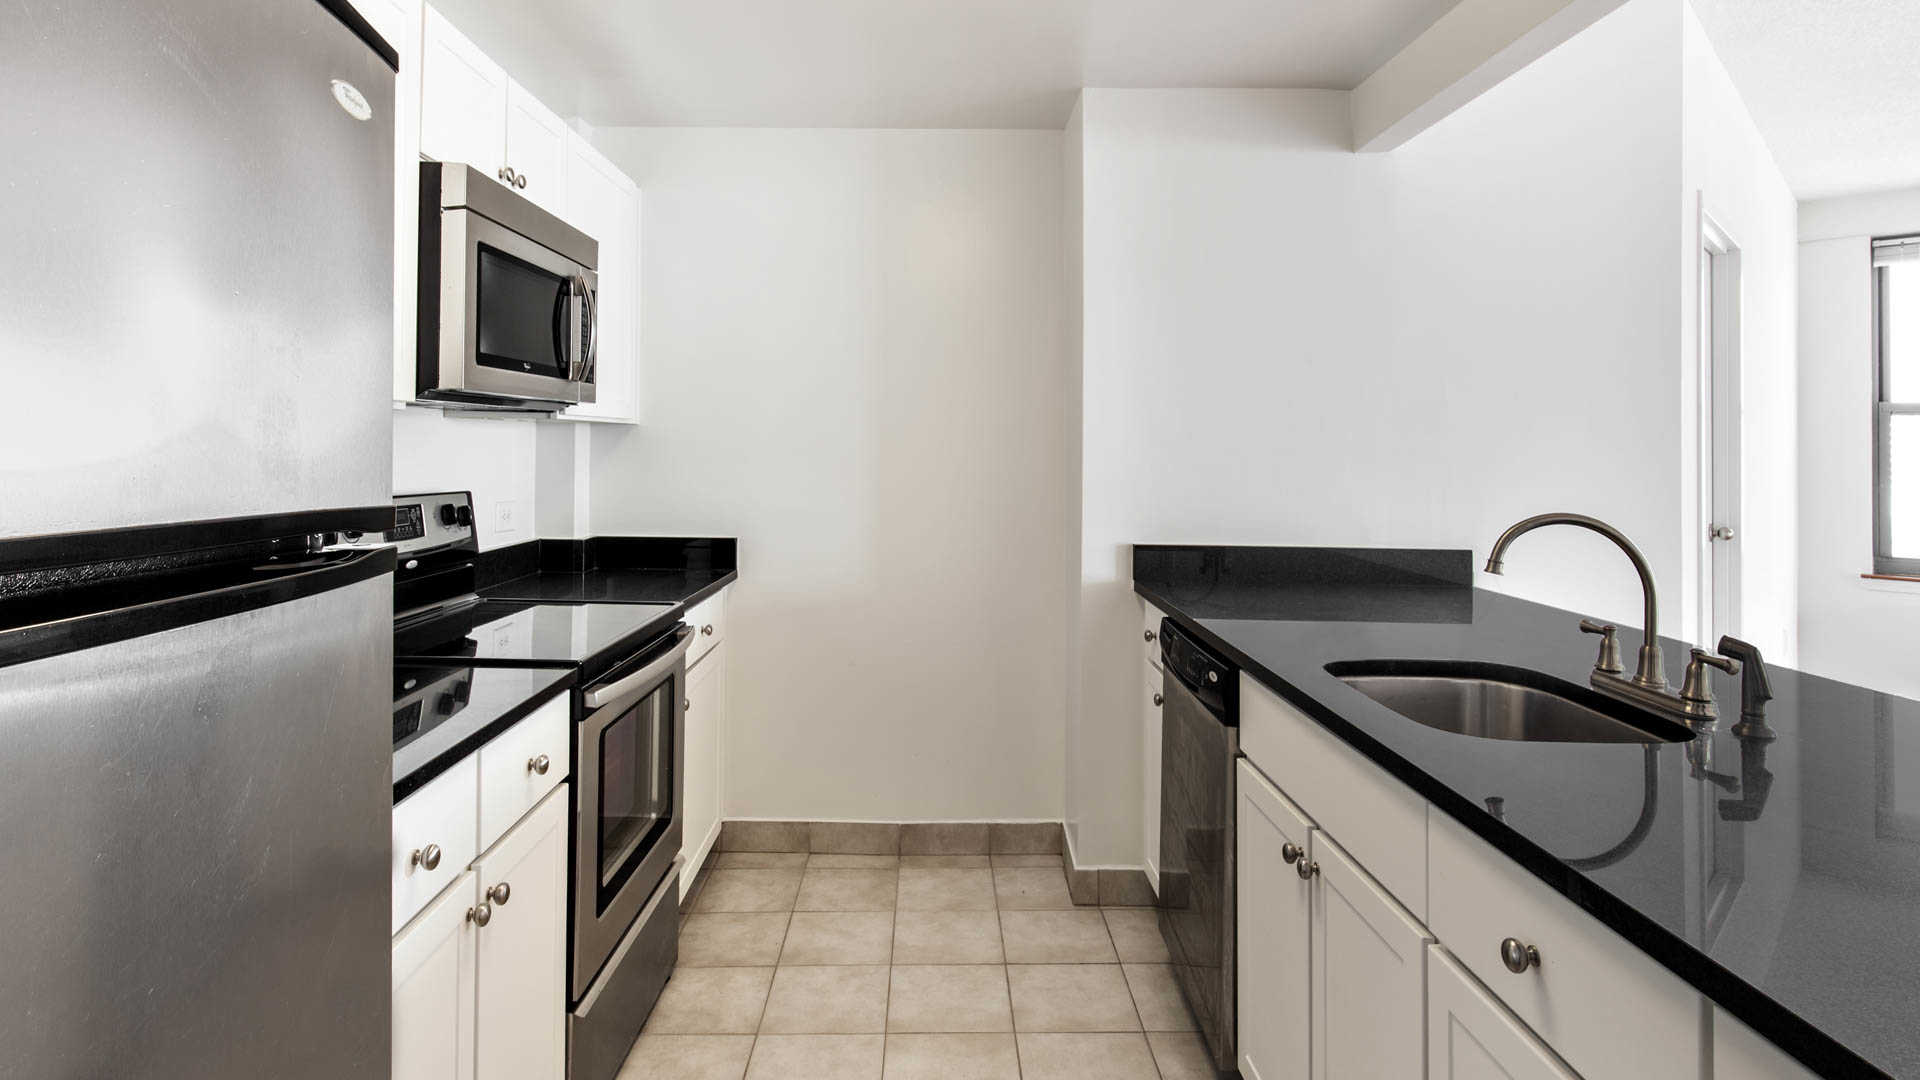 Portside towers apartments kitchen